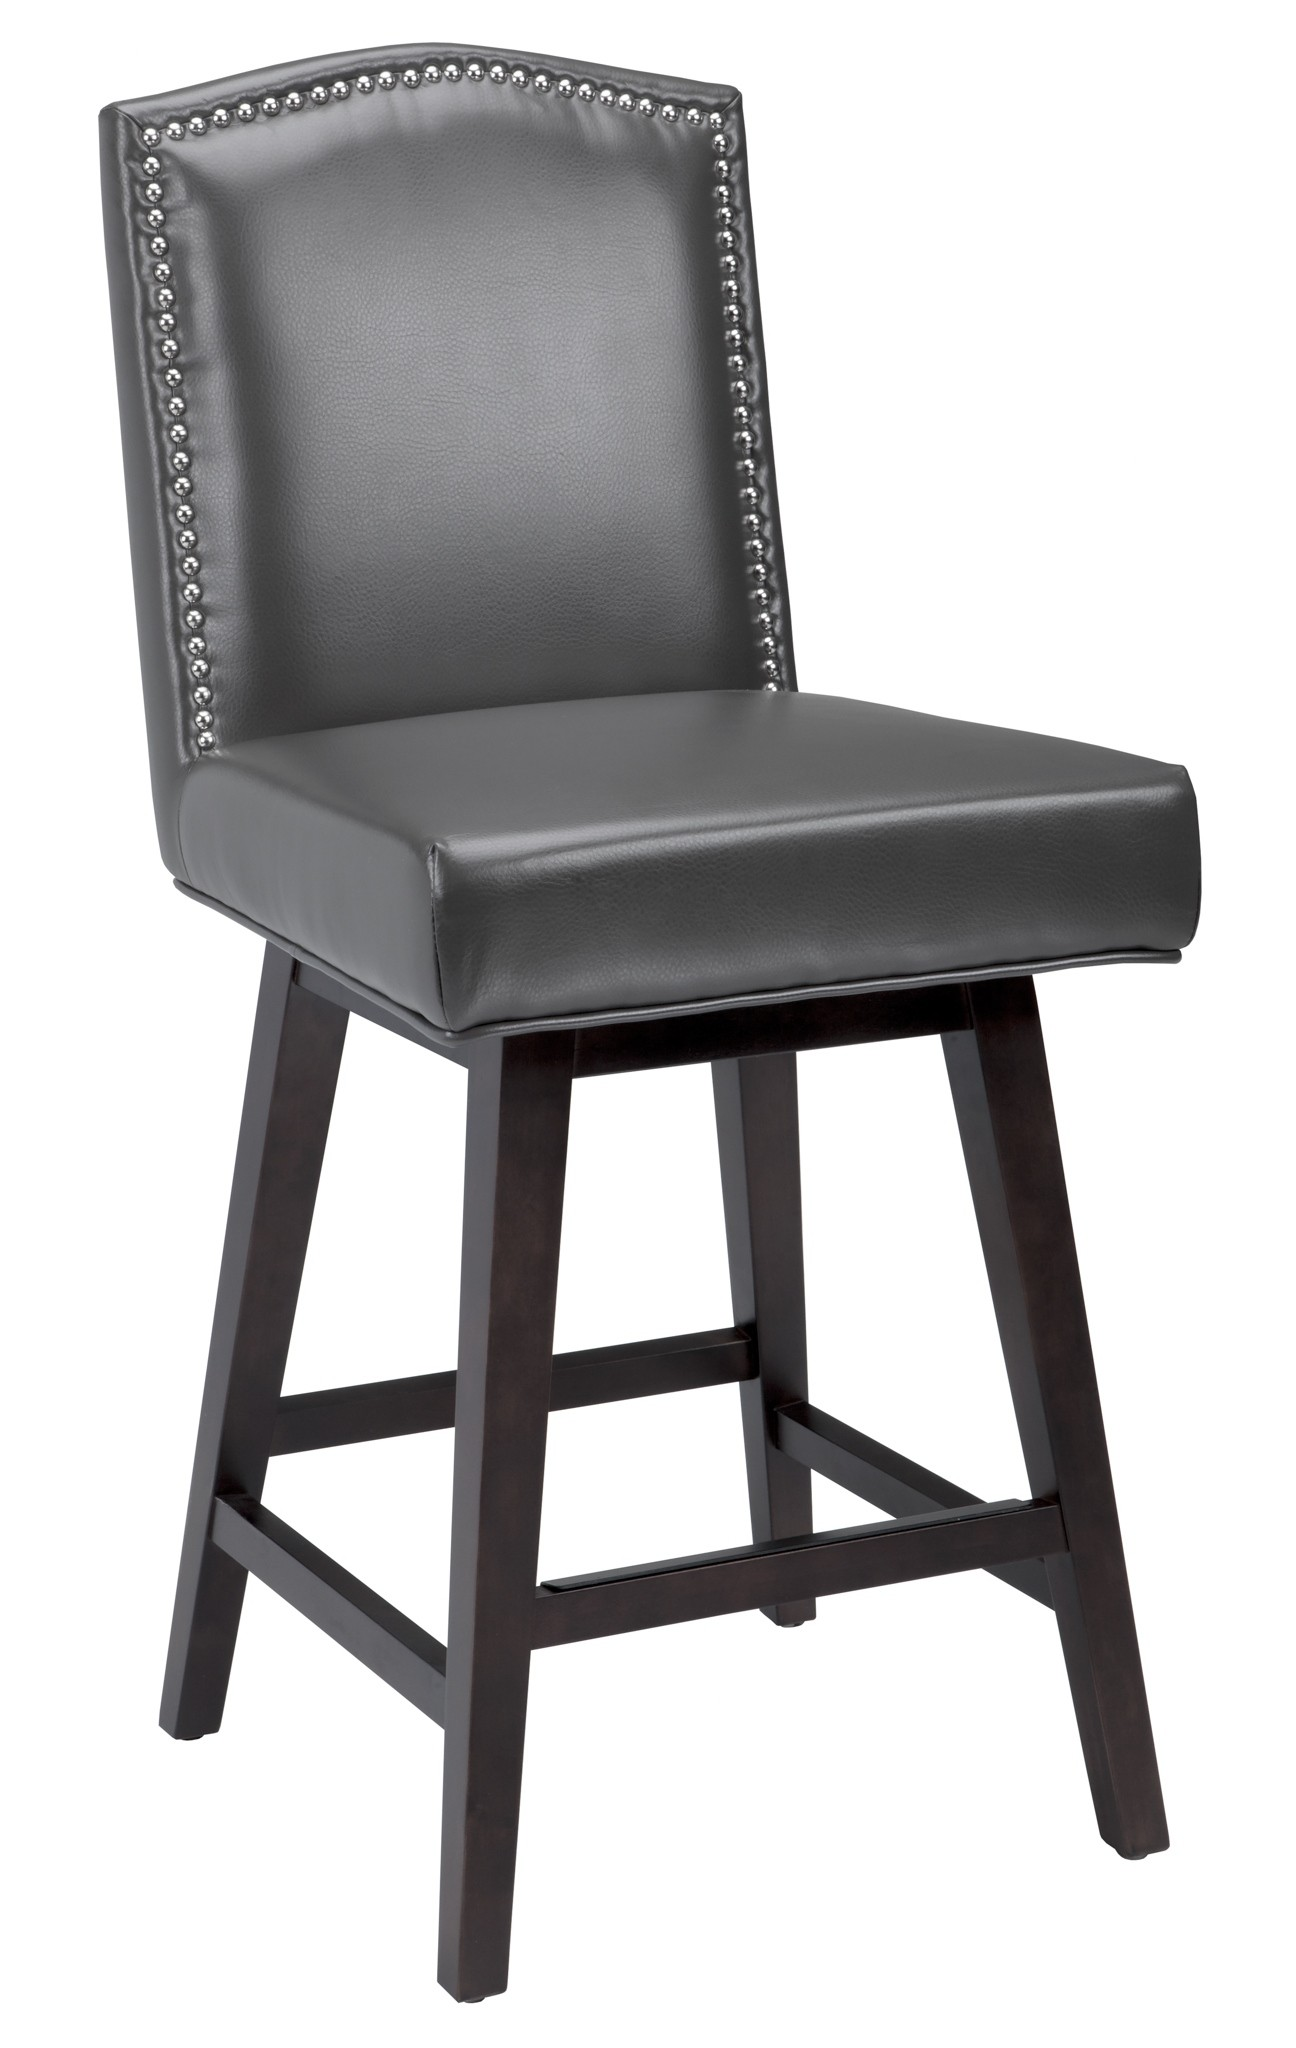 Maison Grey Swivel Counter Stool from Sunpan